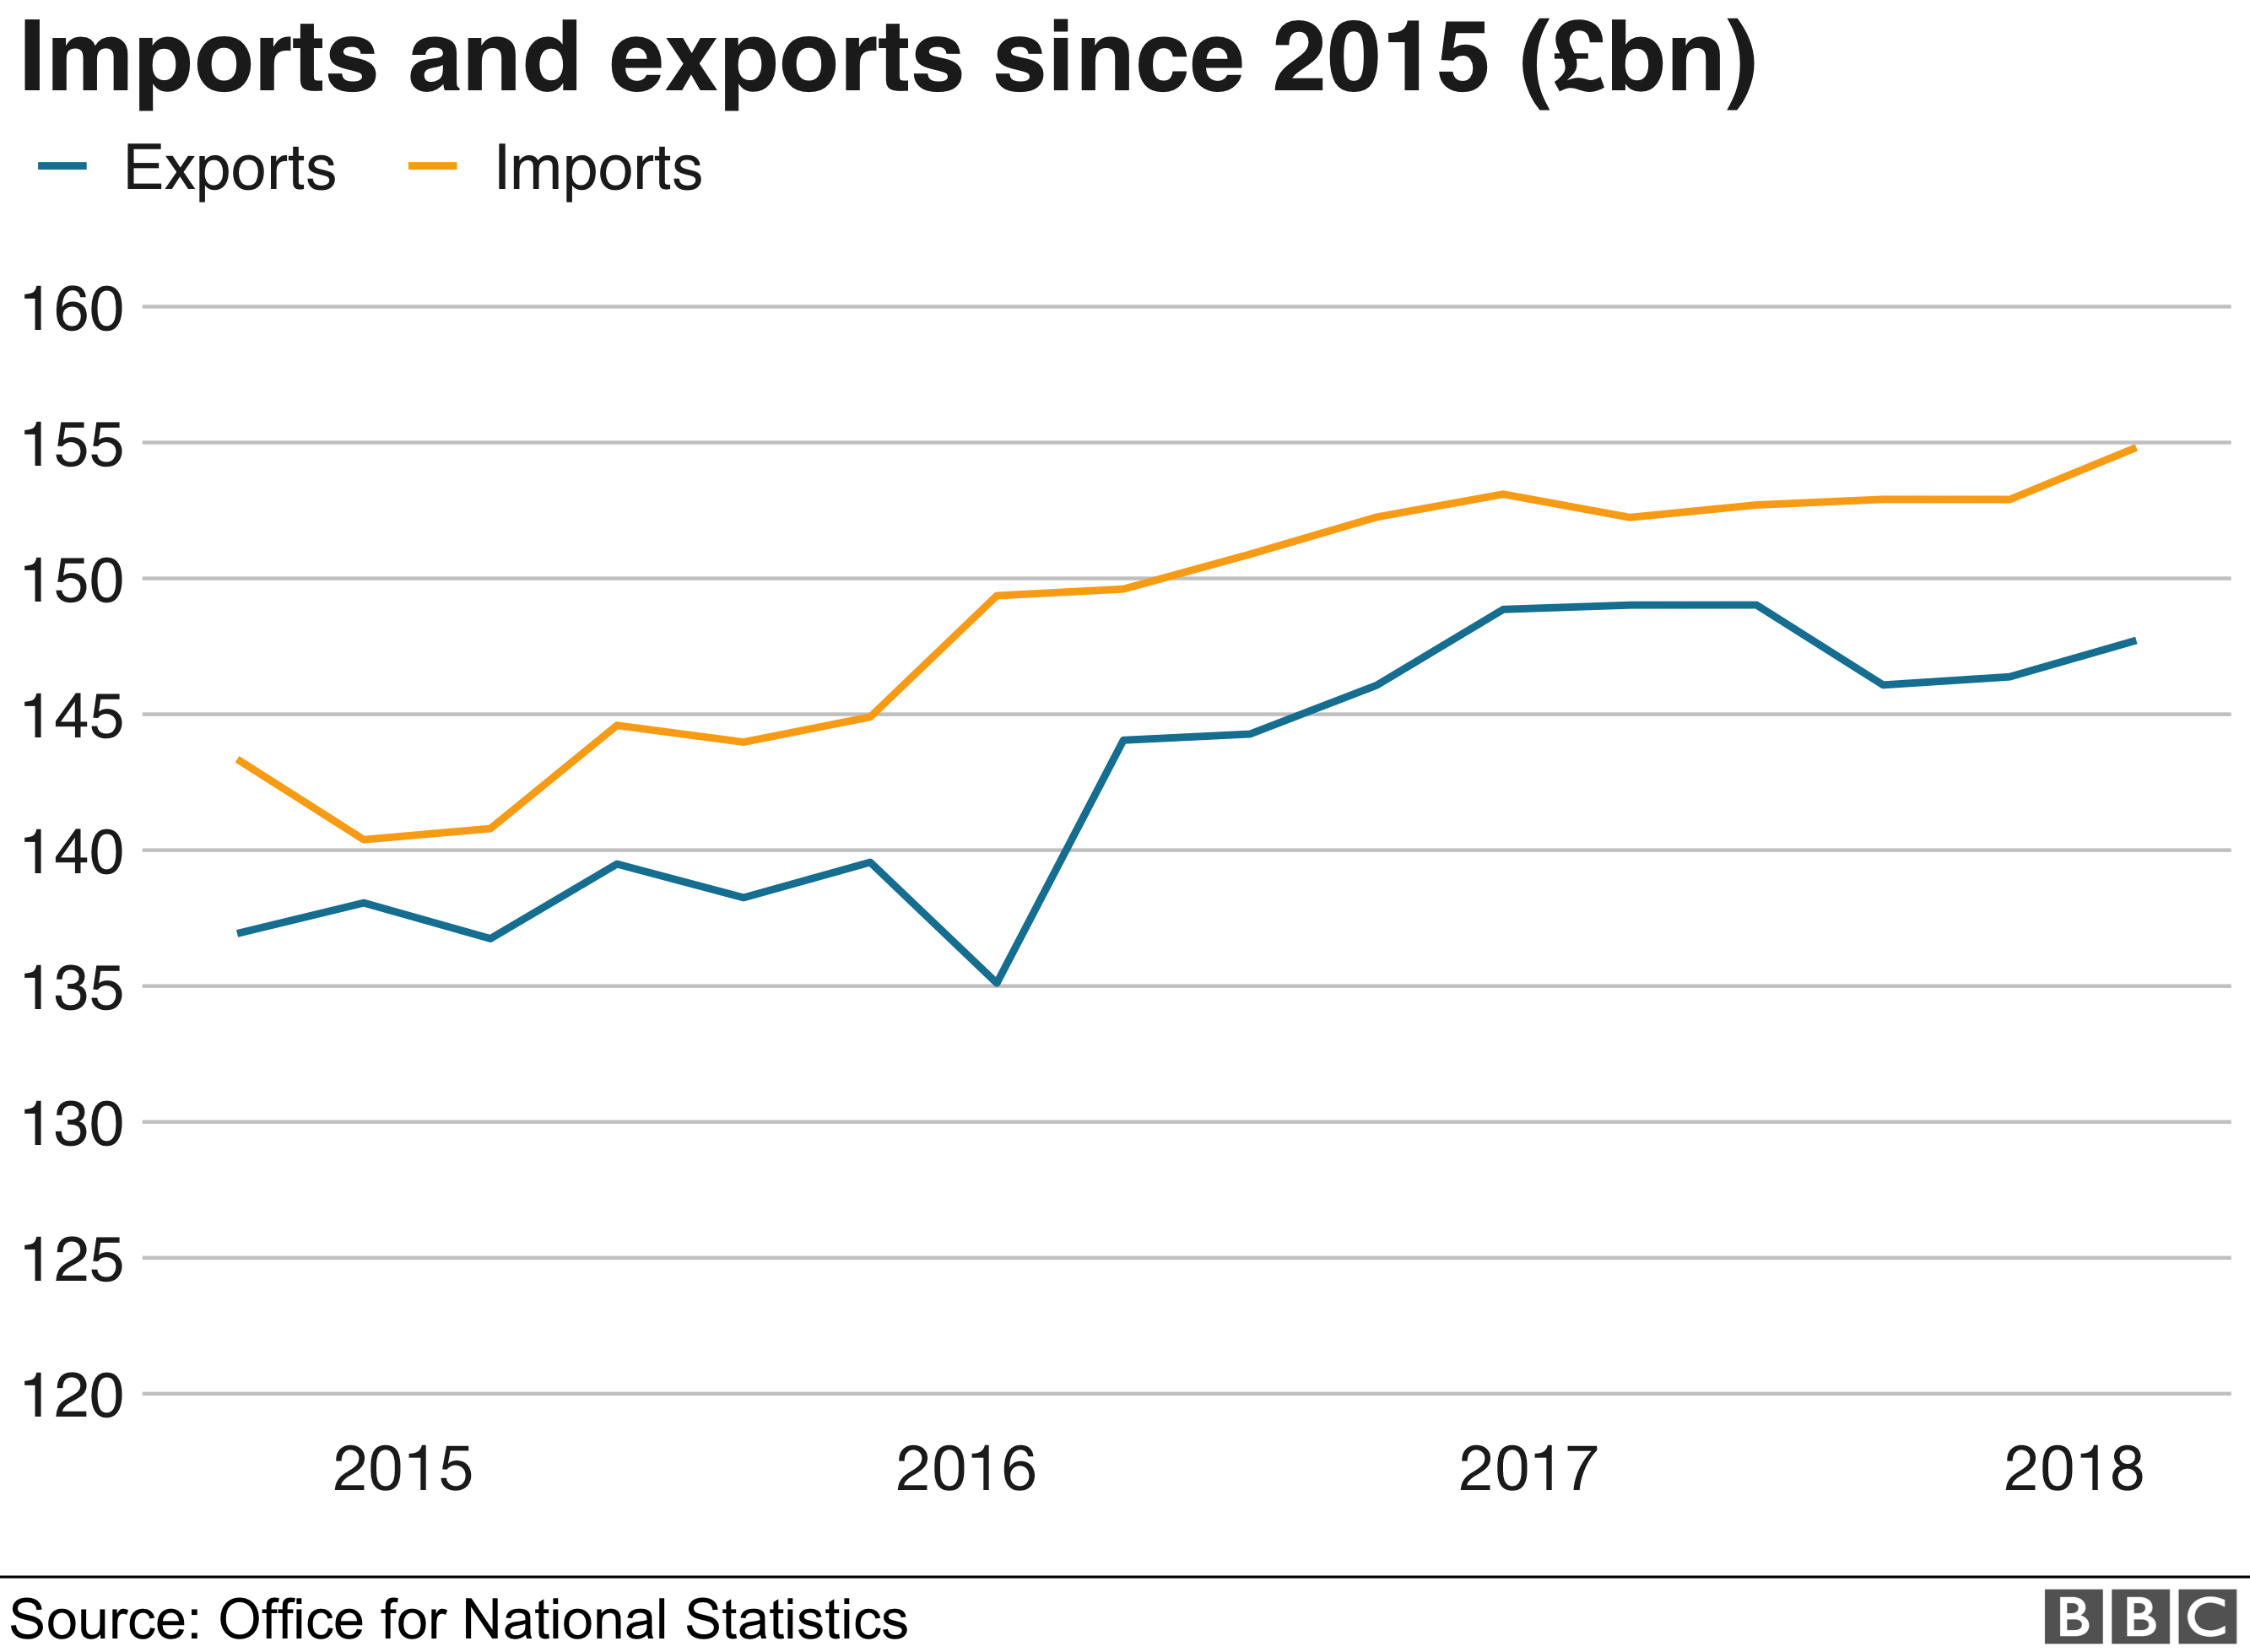 Chart showing imports and exports since 2015